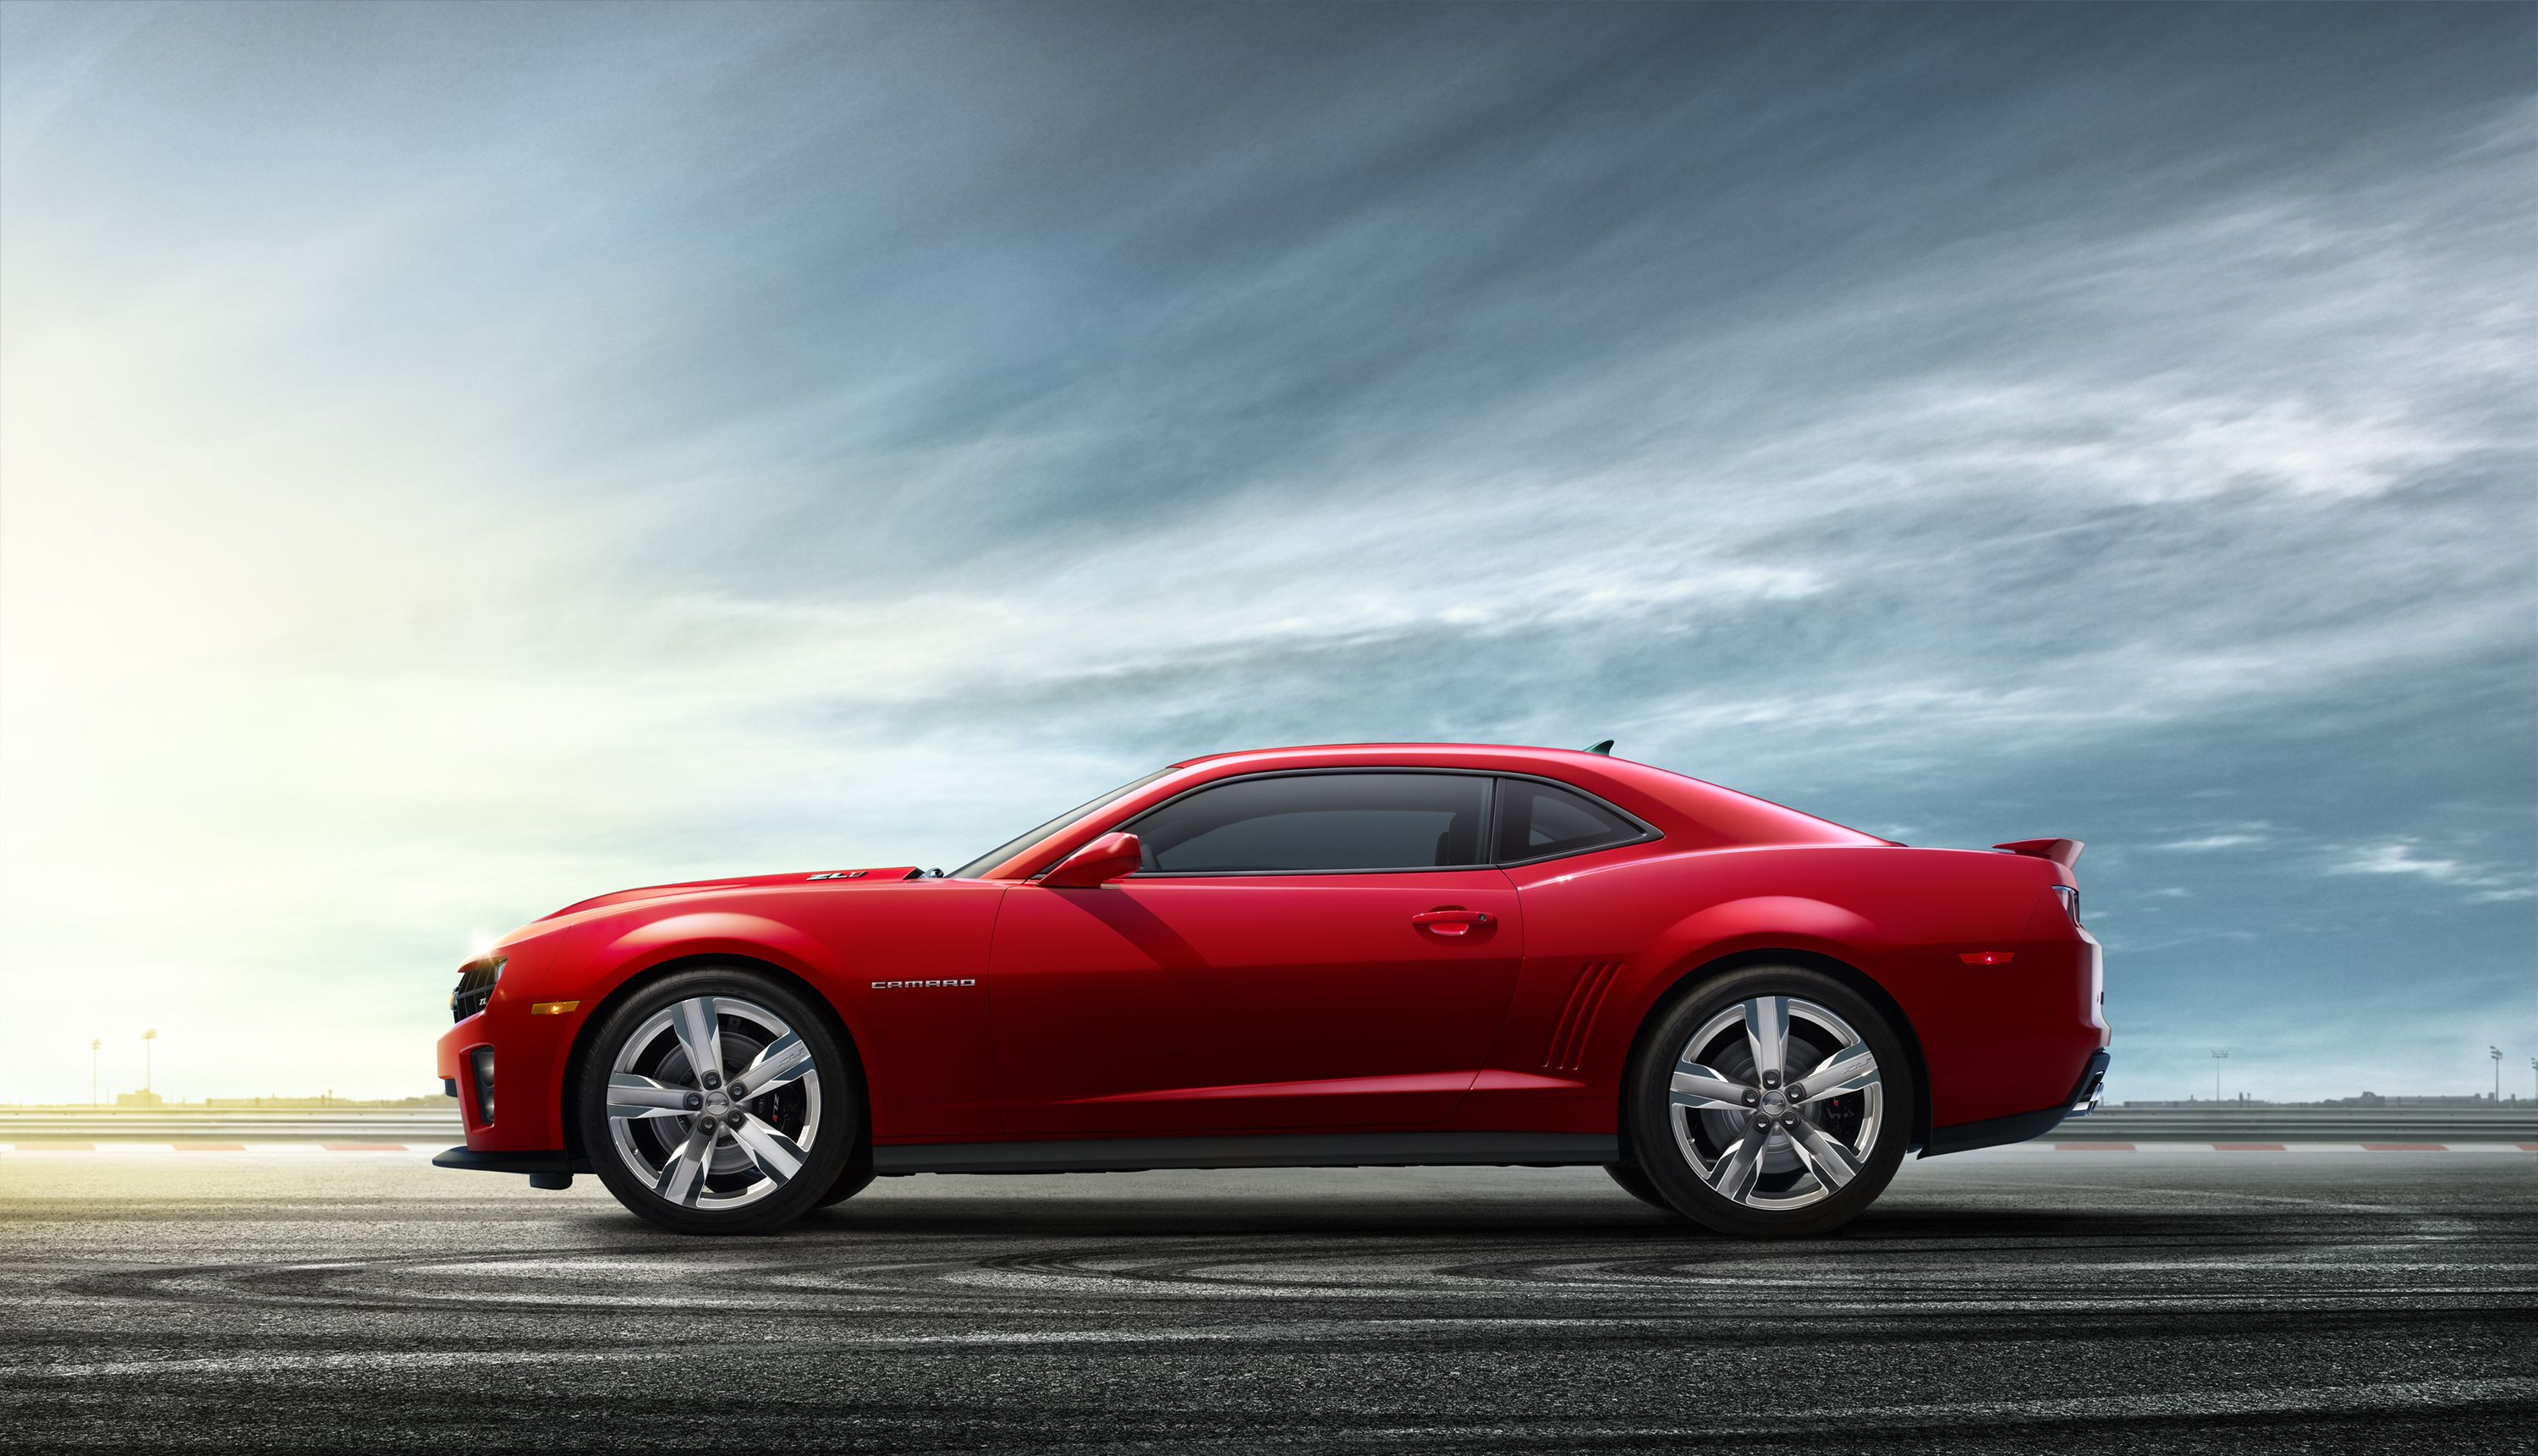 2020 Chevrolet Camaro Review Pricing And Specs Chevrolet Camaro Camaro Zl1 Chevrolet Camaro Zl1